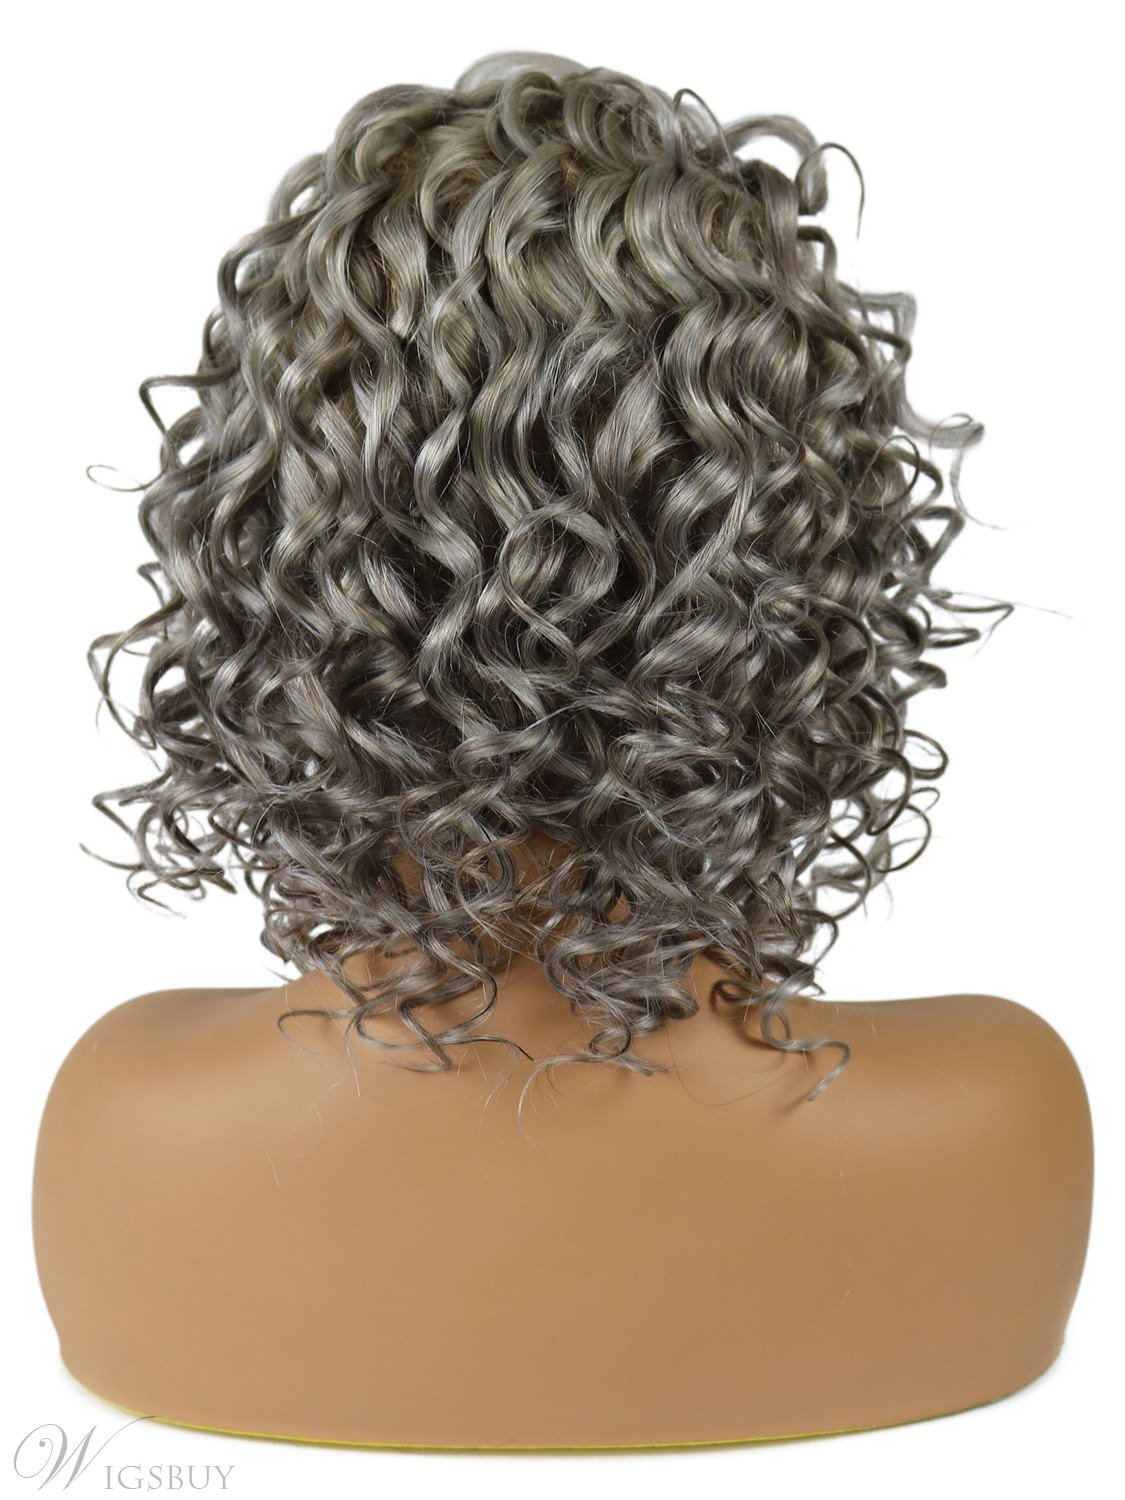 Salt and Pepper Hair Medium Length Human Hair Lace Front Curly Wigs 14 Inches